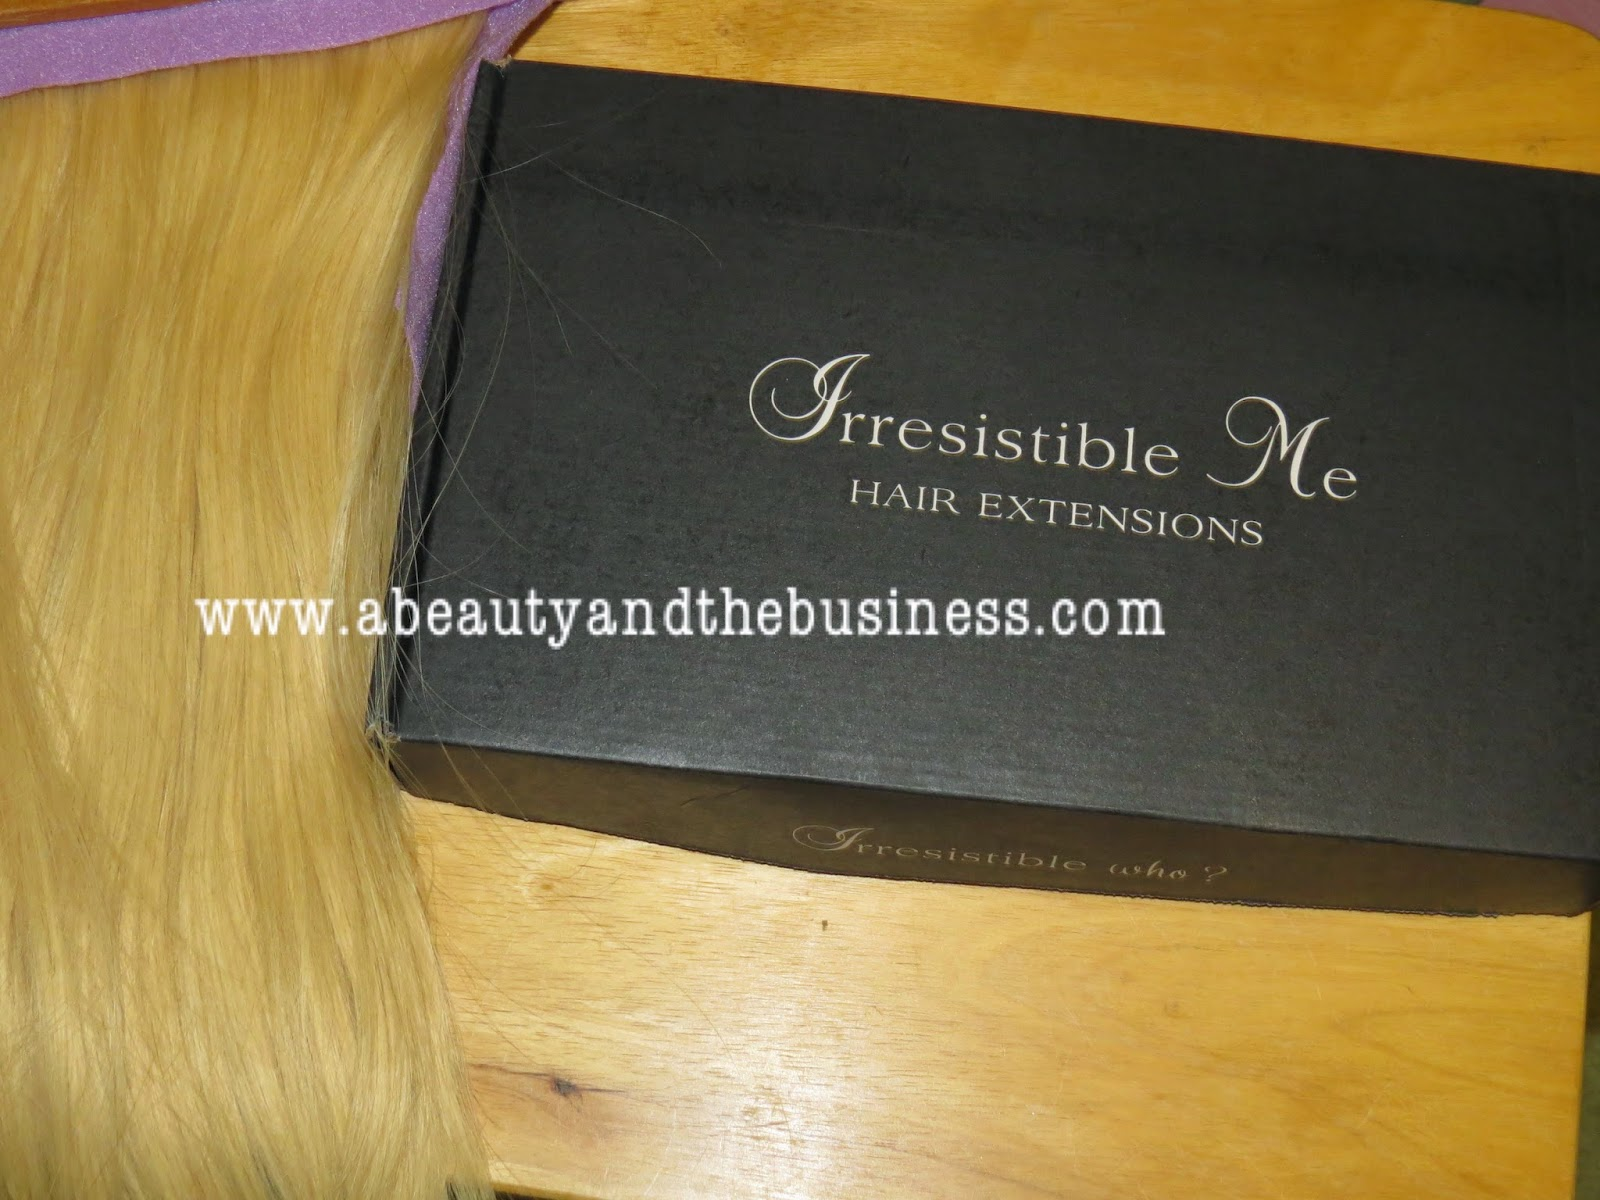 honest irresistible me hair extensions review, honest irresistible me review, hair extension review, honest hair extension review, irresistible me hair review, blonde hair extension review, thin hair extension review,